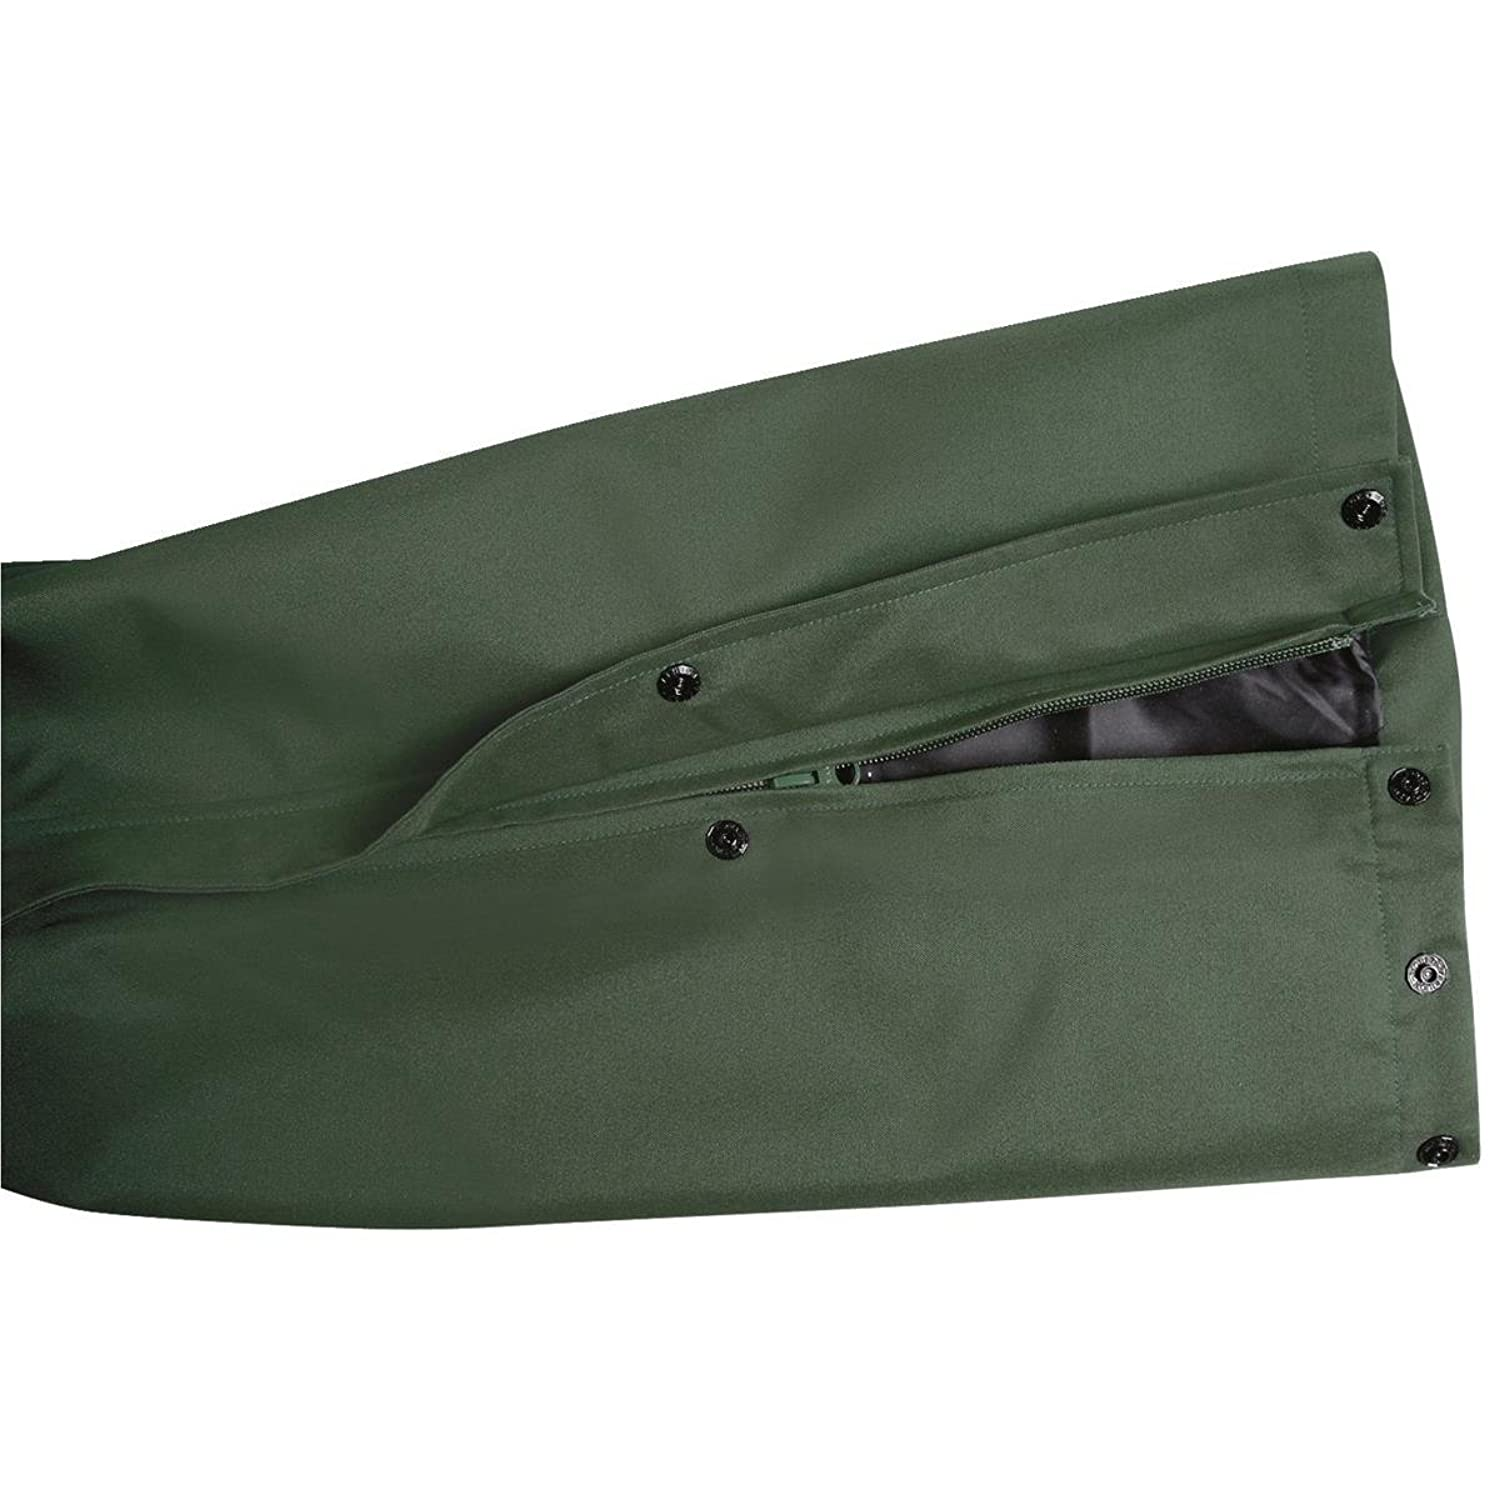 GEMPLER'S Breathable Fully-Lined Rain Pants with Extra-Long Leg Opener Zippers